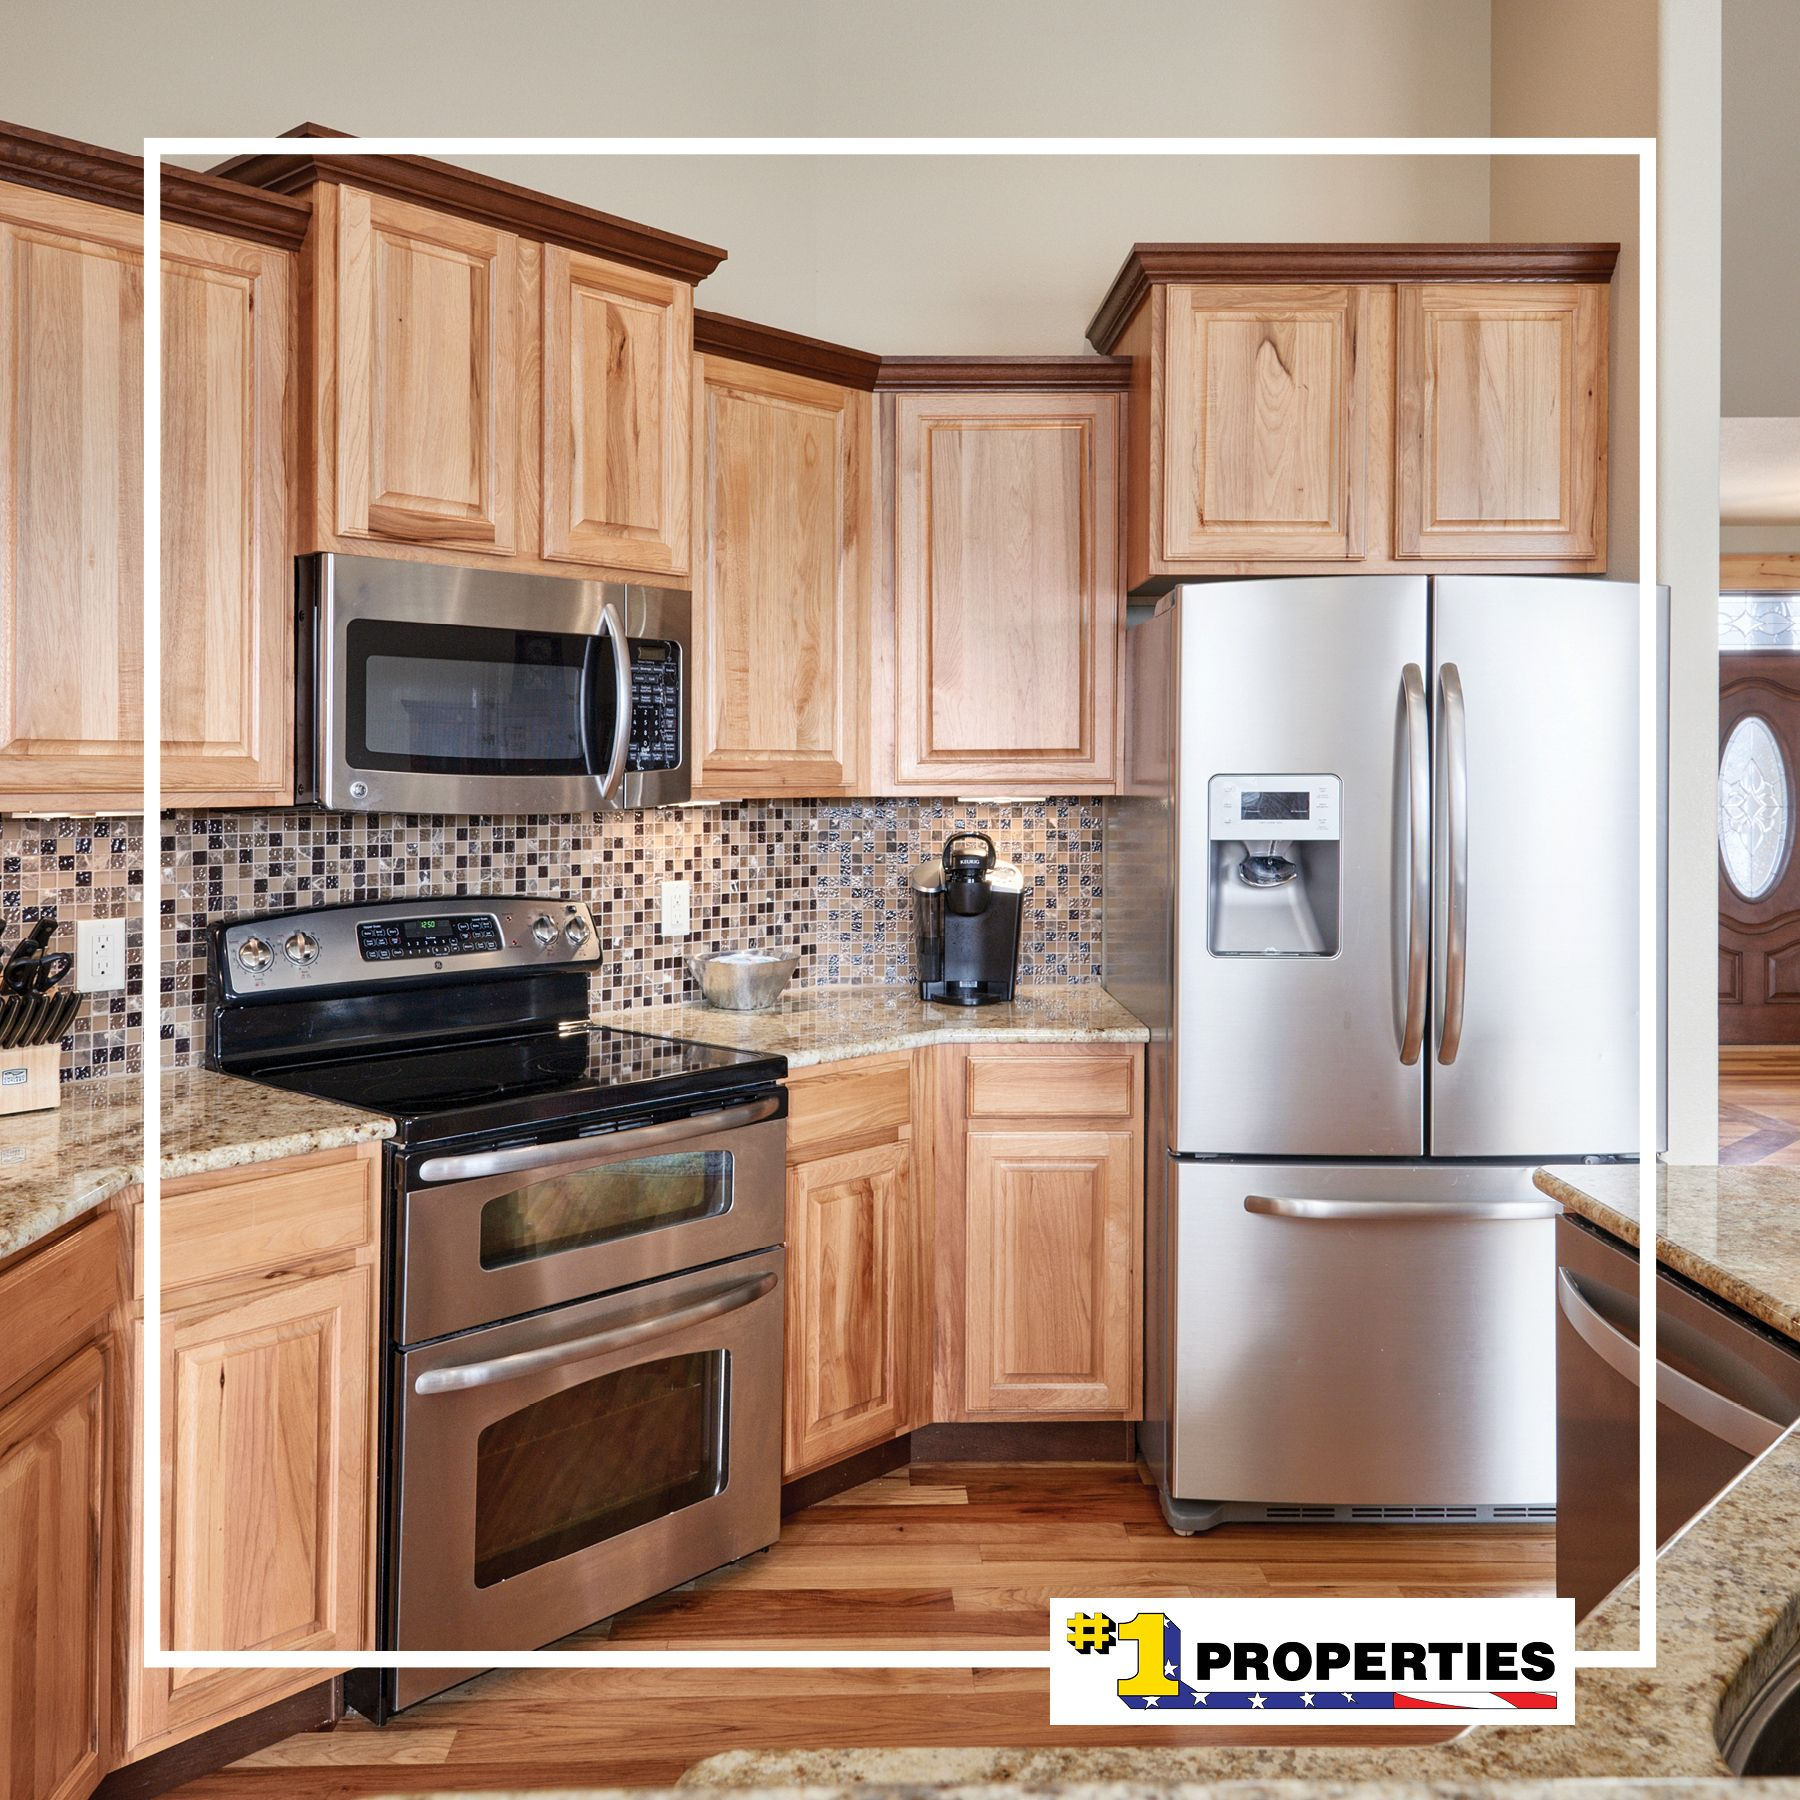 Attractive Textures And Accents 707 Gabriel Court Cheyenne Wyoming Cheyennehomes Realestate Househunting Real In 2020 Great Rooms Dream Kitchen Cheyenne Wyoming